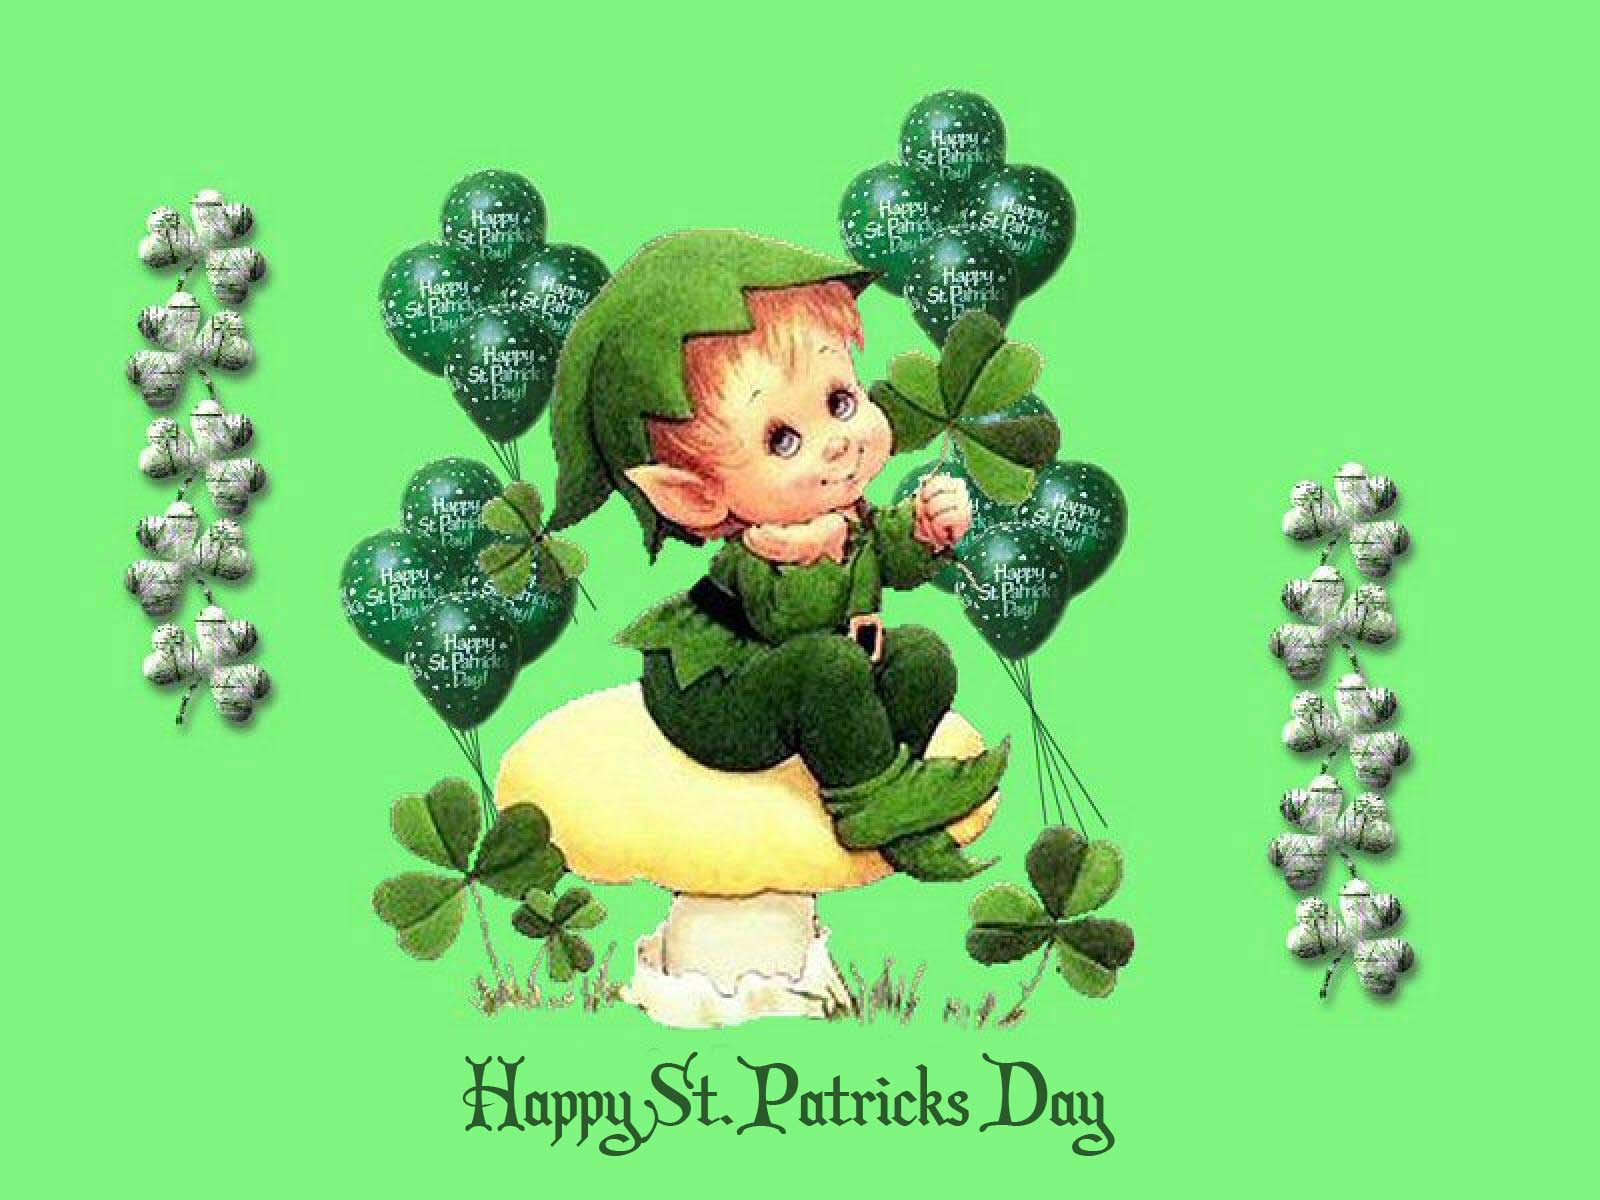 New Hot St. Patrick's Day Full HD Wallpaper Wallpaper